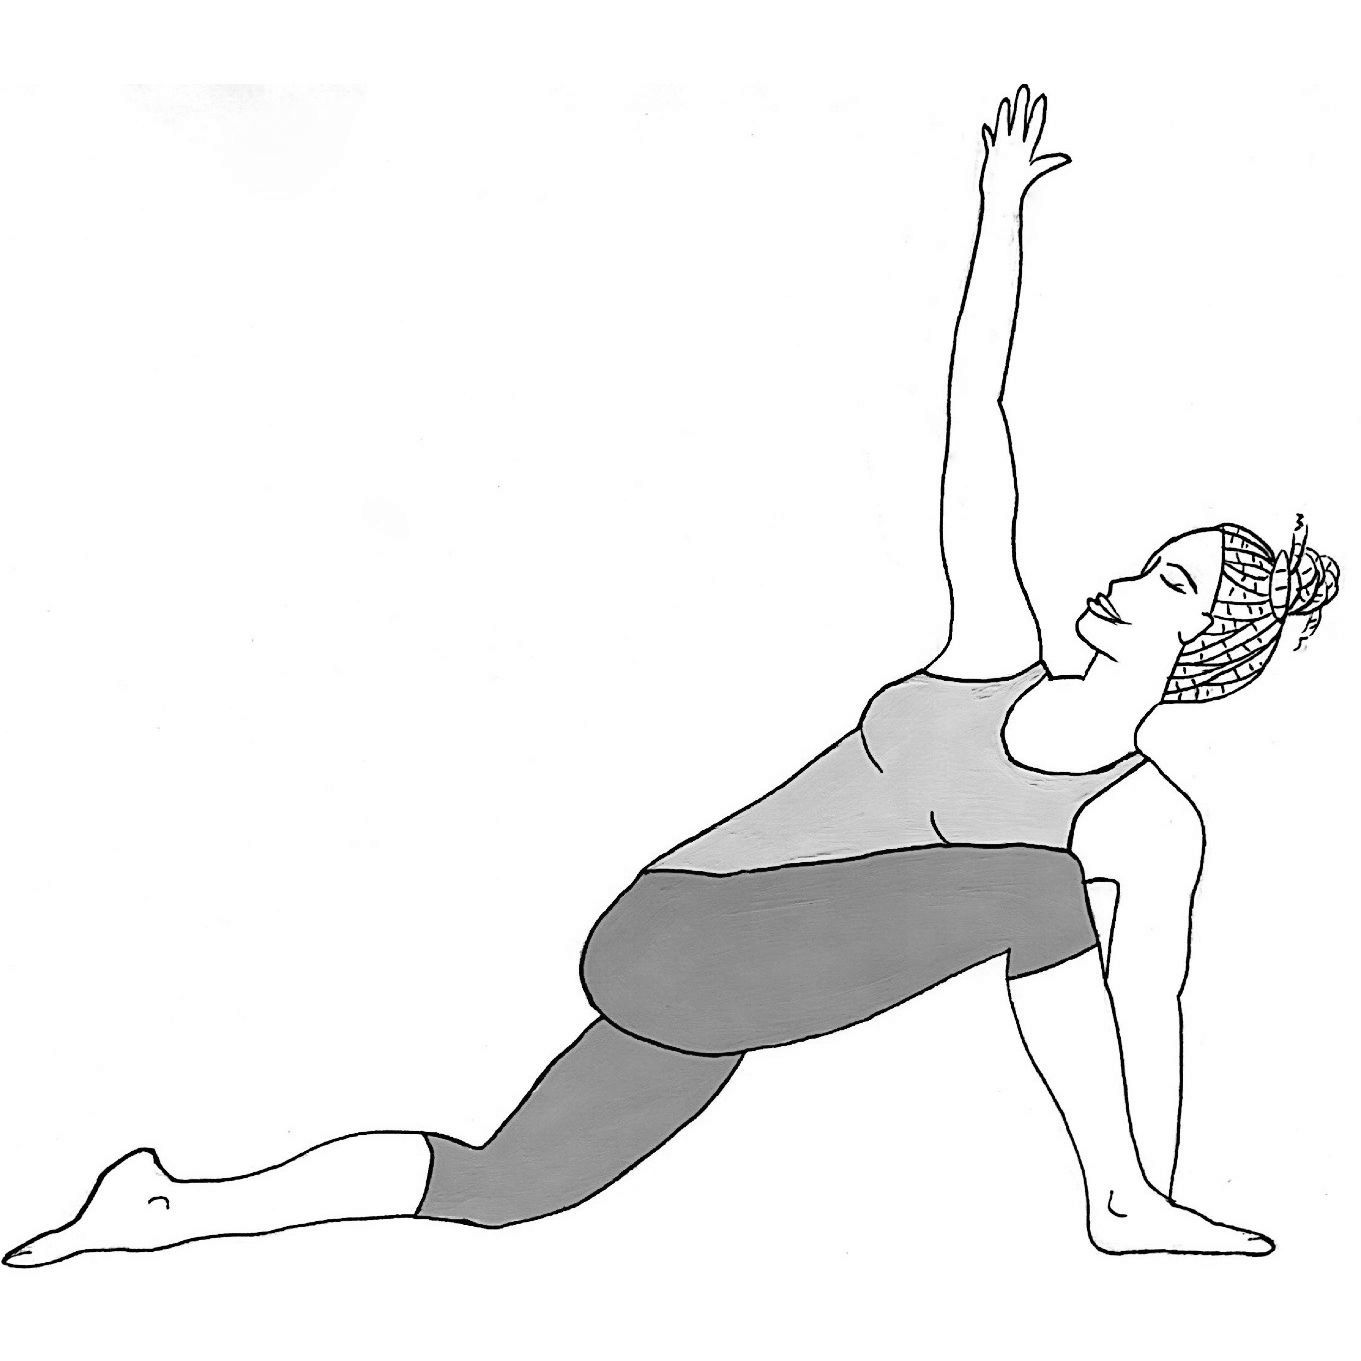 Revolved Low Lunge - Parivritta Anjaneyasana